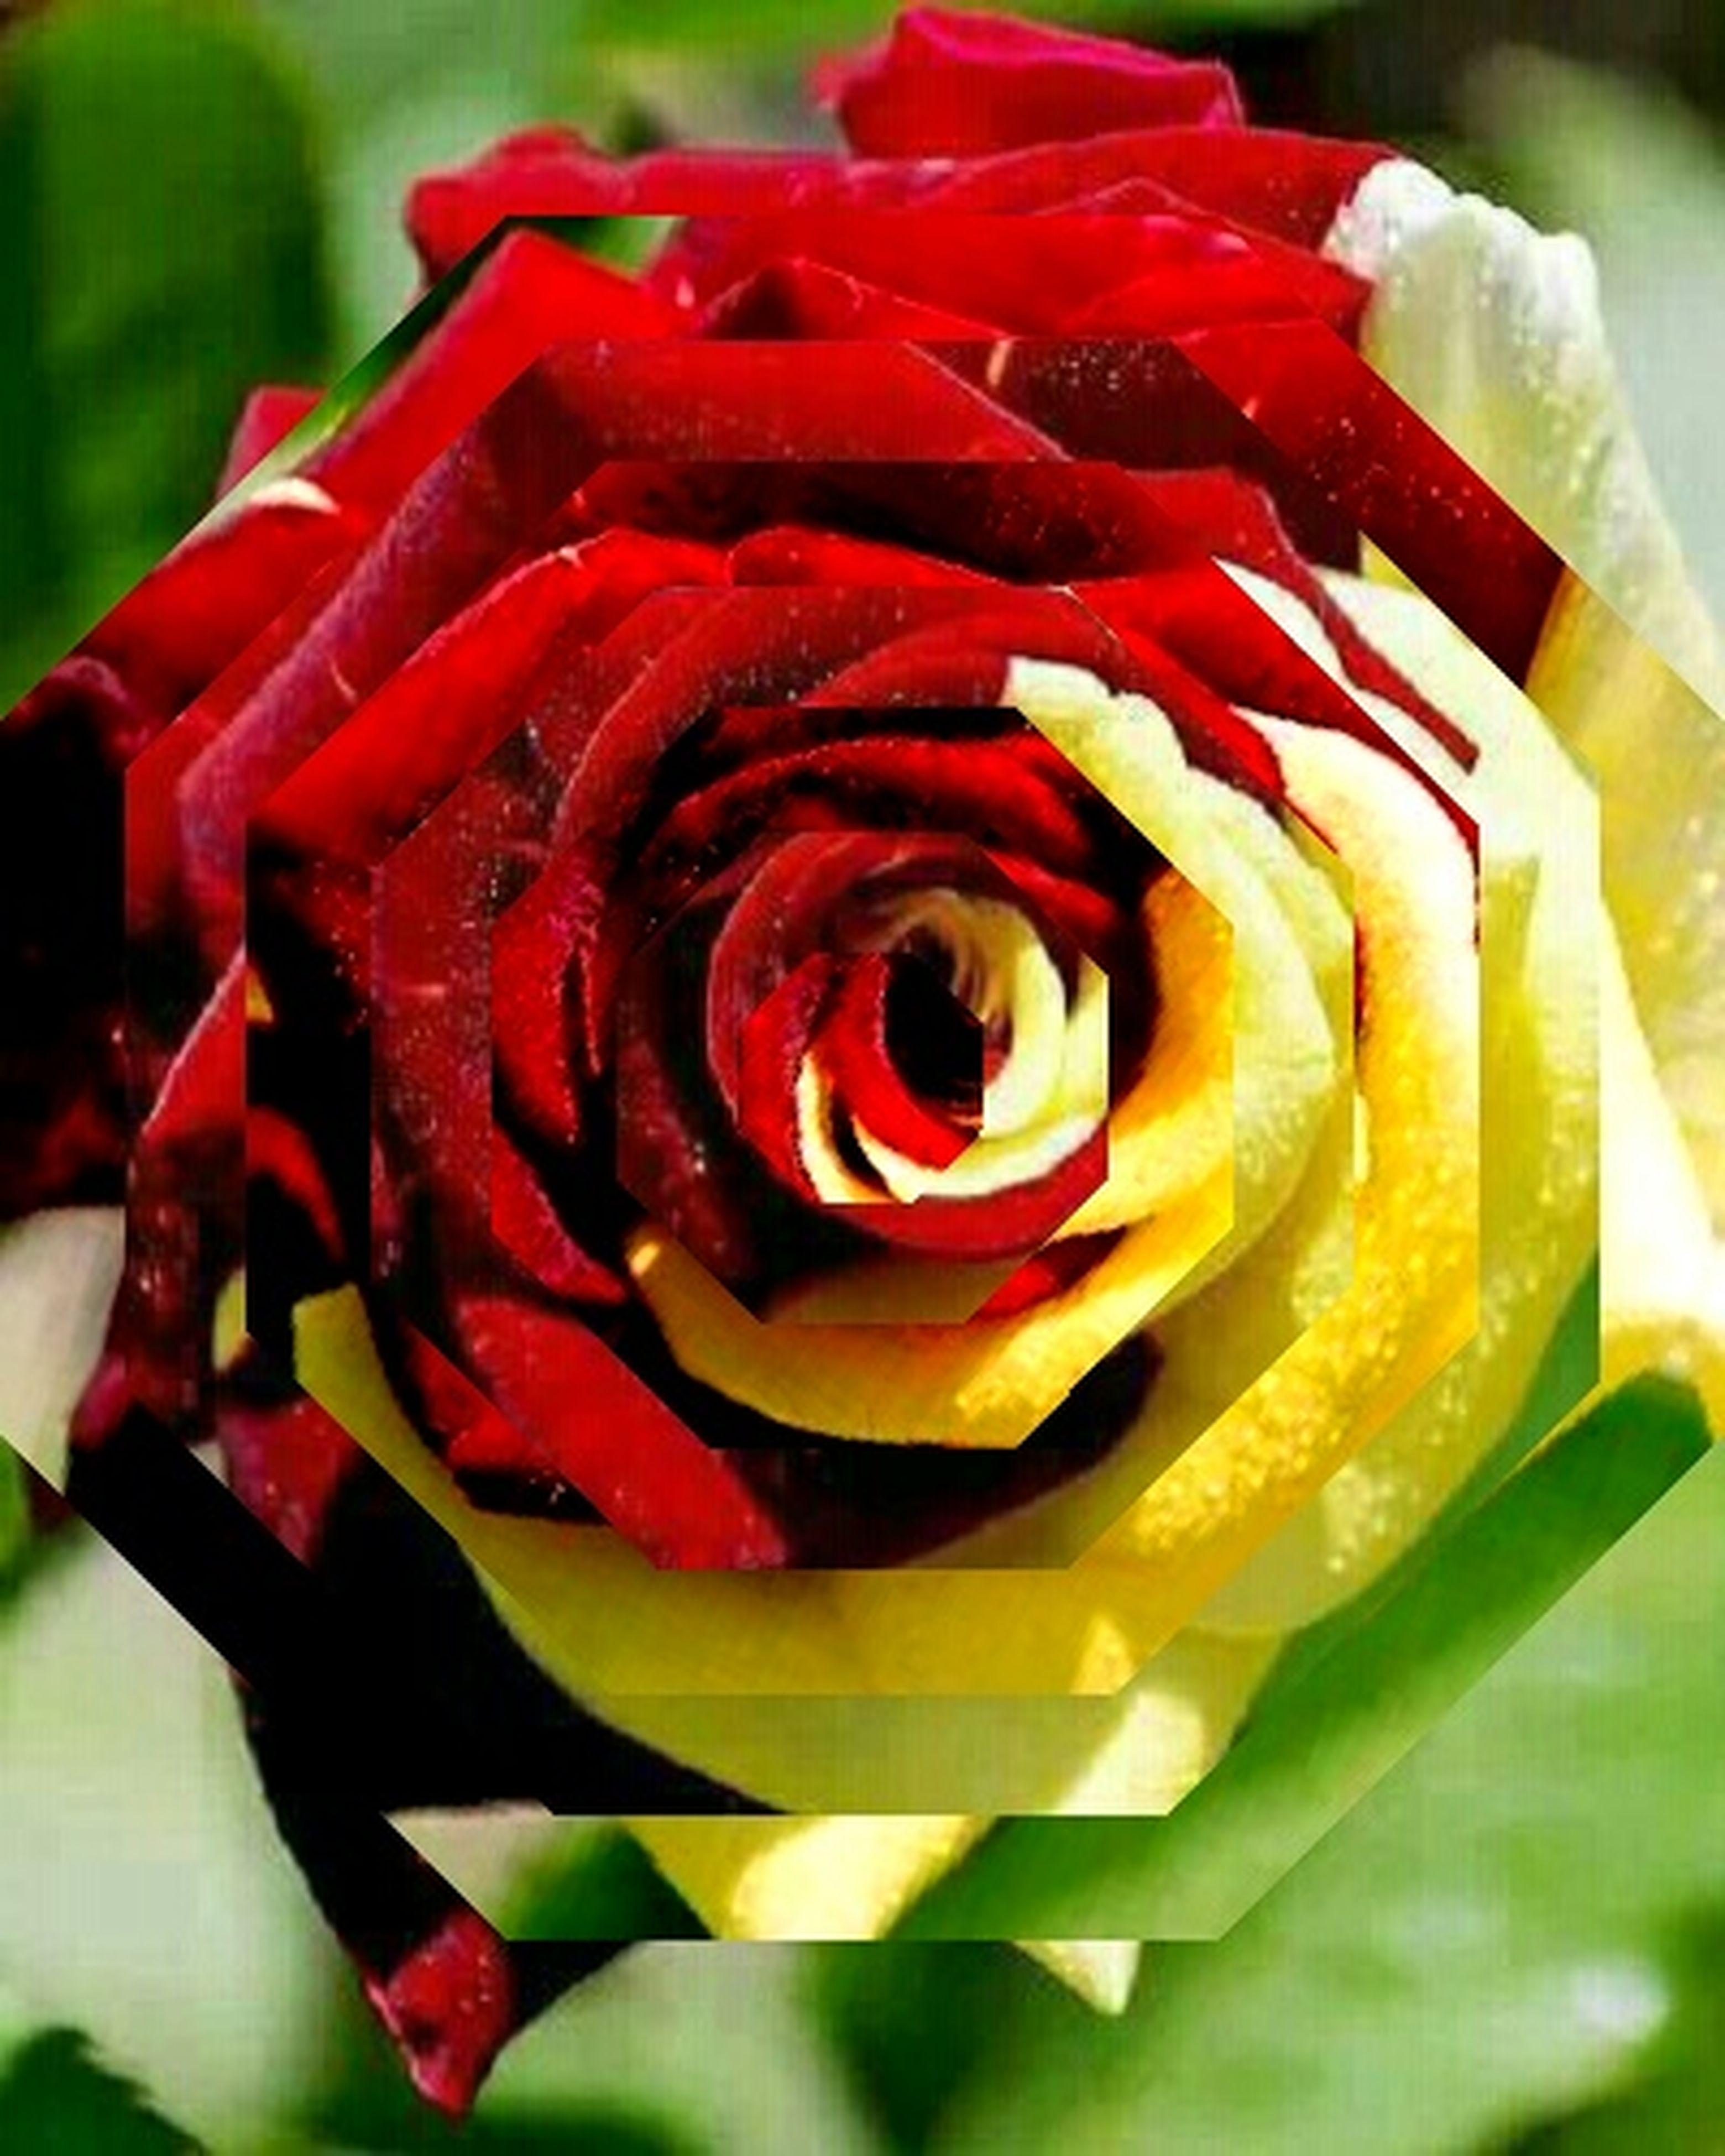 flower, petal, freshness, rose - flower, flower head, close-up, focus on foreground, fragility, red, beauty in nature, single flower, rose, blooming, nature, growth, single rose, no people, indoors, plant, selective focus